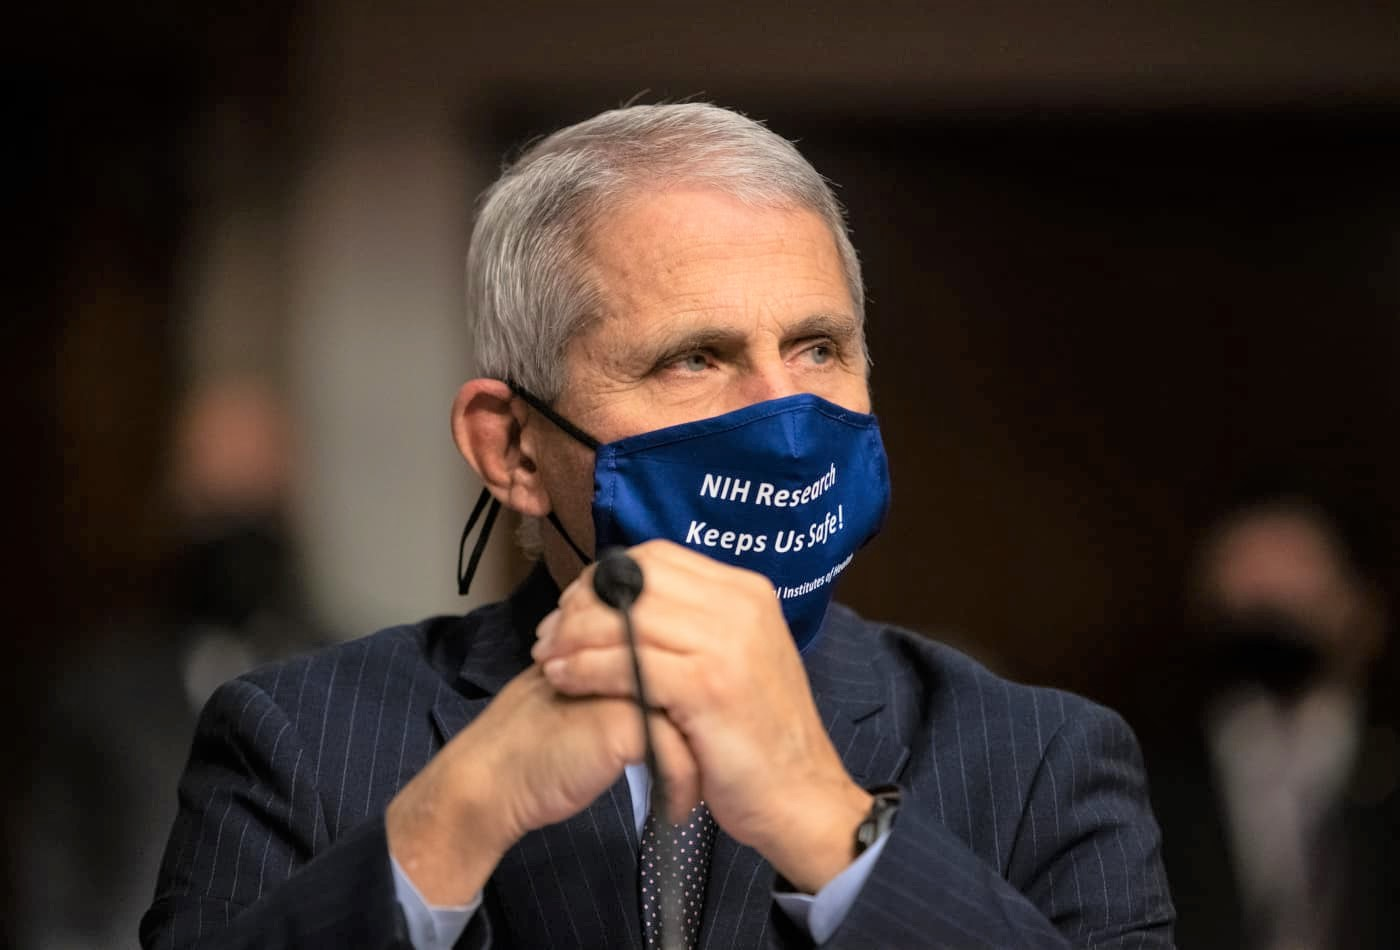 Anthony Fauci, director of the National Institute of Allergy and Infectious Diseases, sits ahead of a Senate Health Education Labor and Pensions Committee hearing in Washington, D.C., U.S., on Wednesday, Sept. 23, 2020